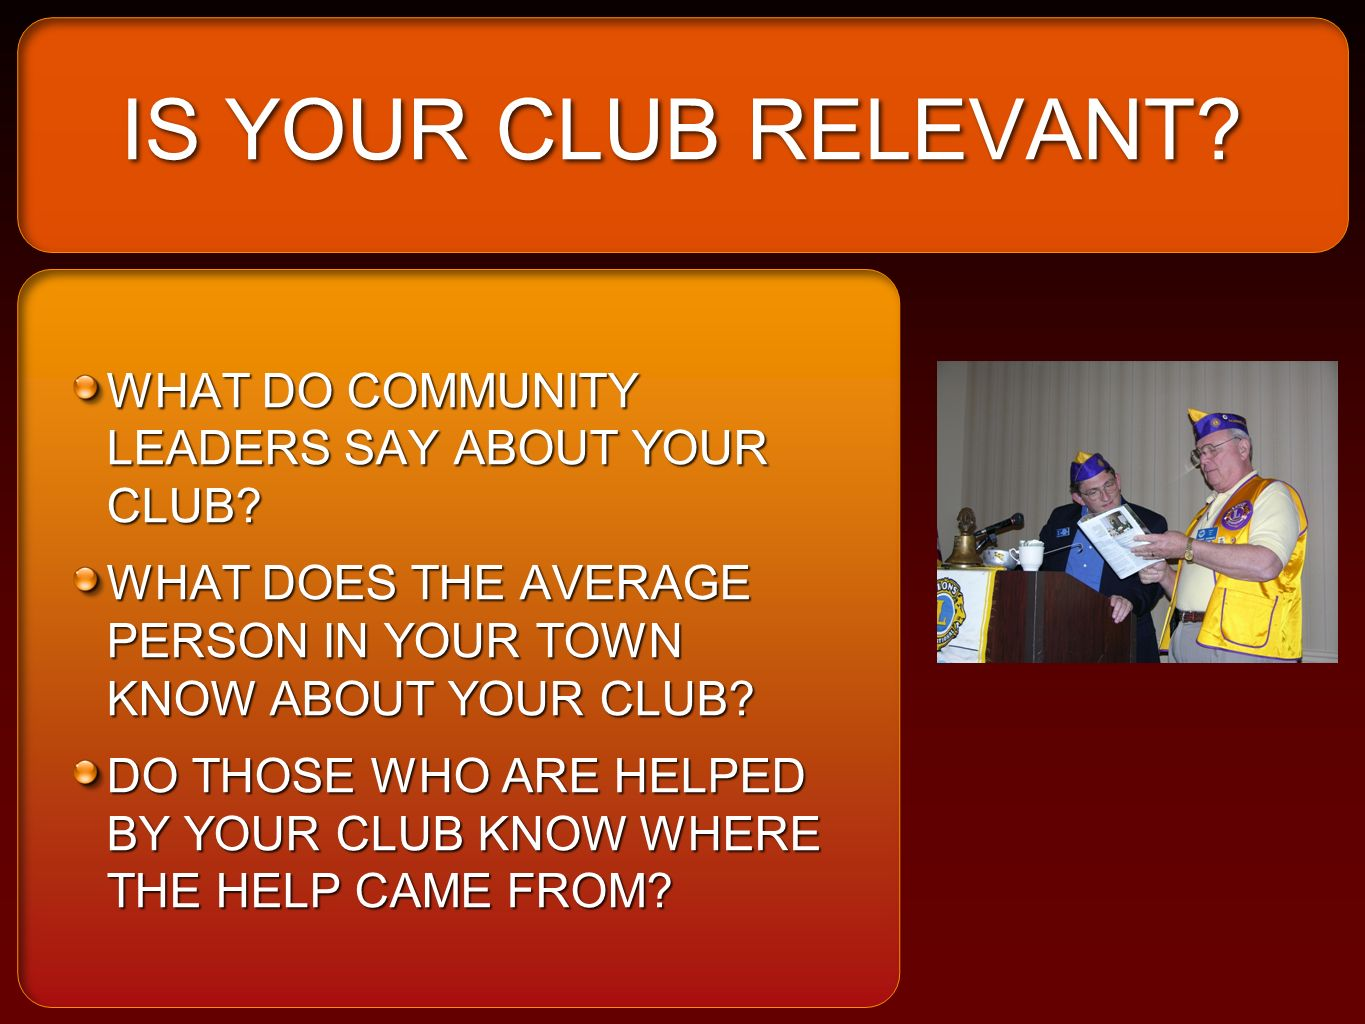 IS YOUR CLUB RELEVANT? WHAT DO COMMUNITY LEADERS SAY ABOUT YOUR CLUB? WHAT DOES THE AVERAGE PERSON IN YOUR TOWN KNOW ABOUT YOUR CLUB? DO THOSE WHO ARE